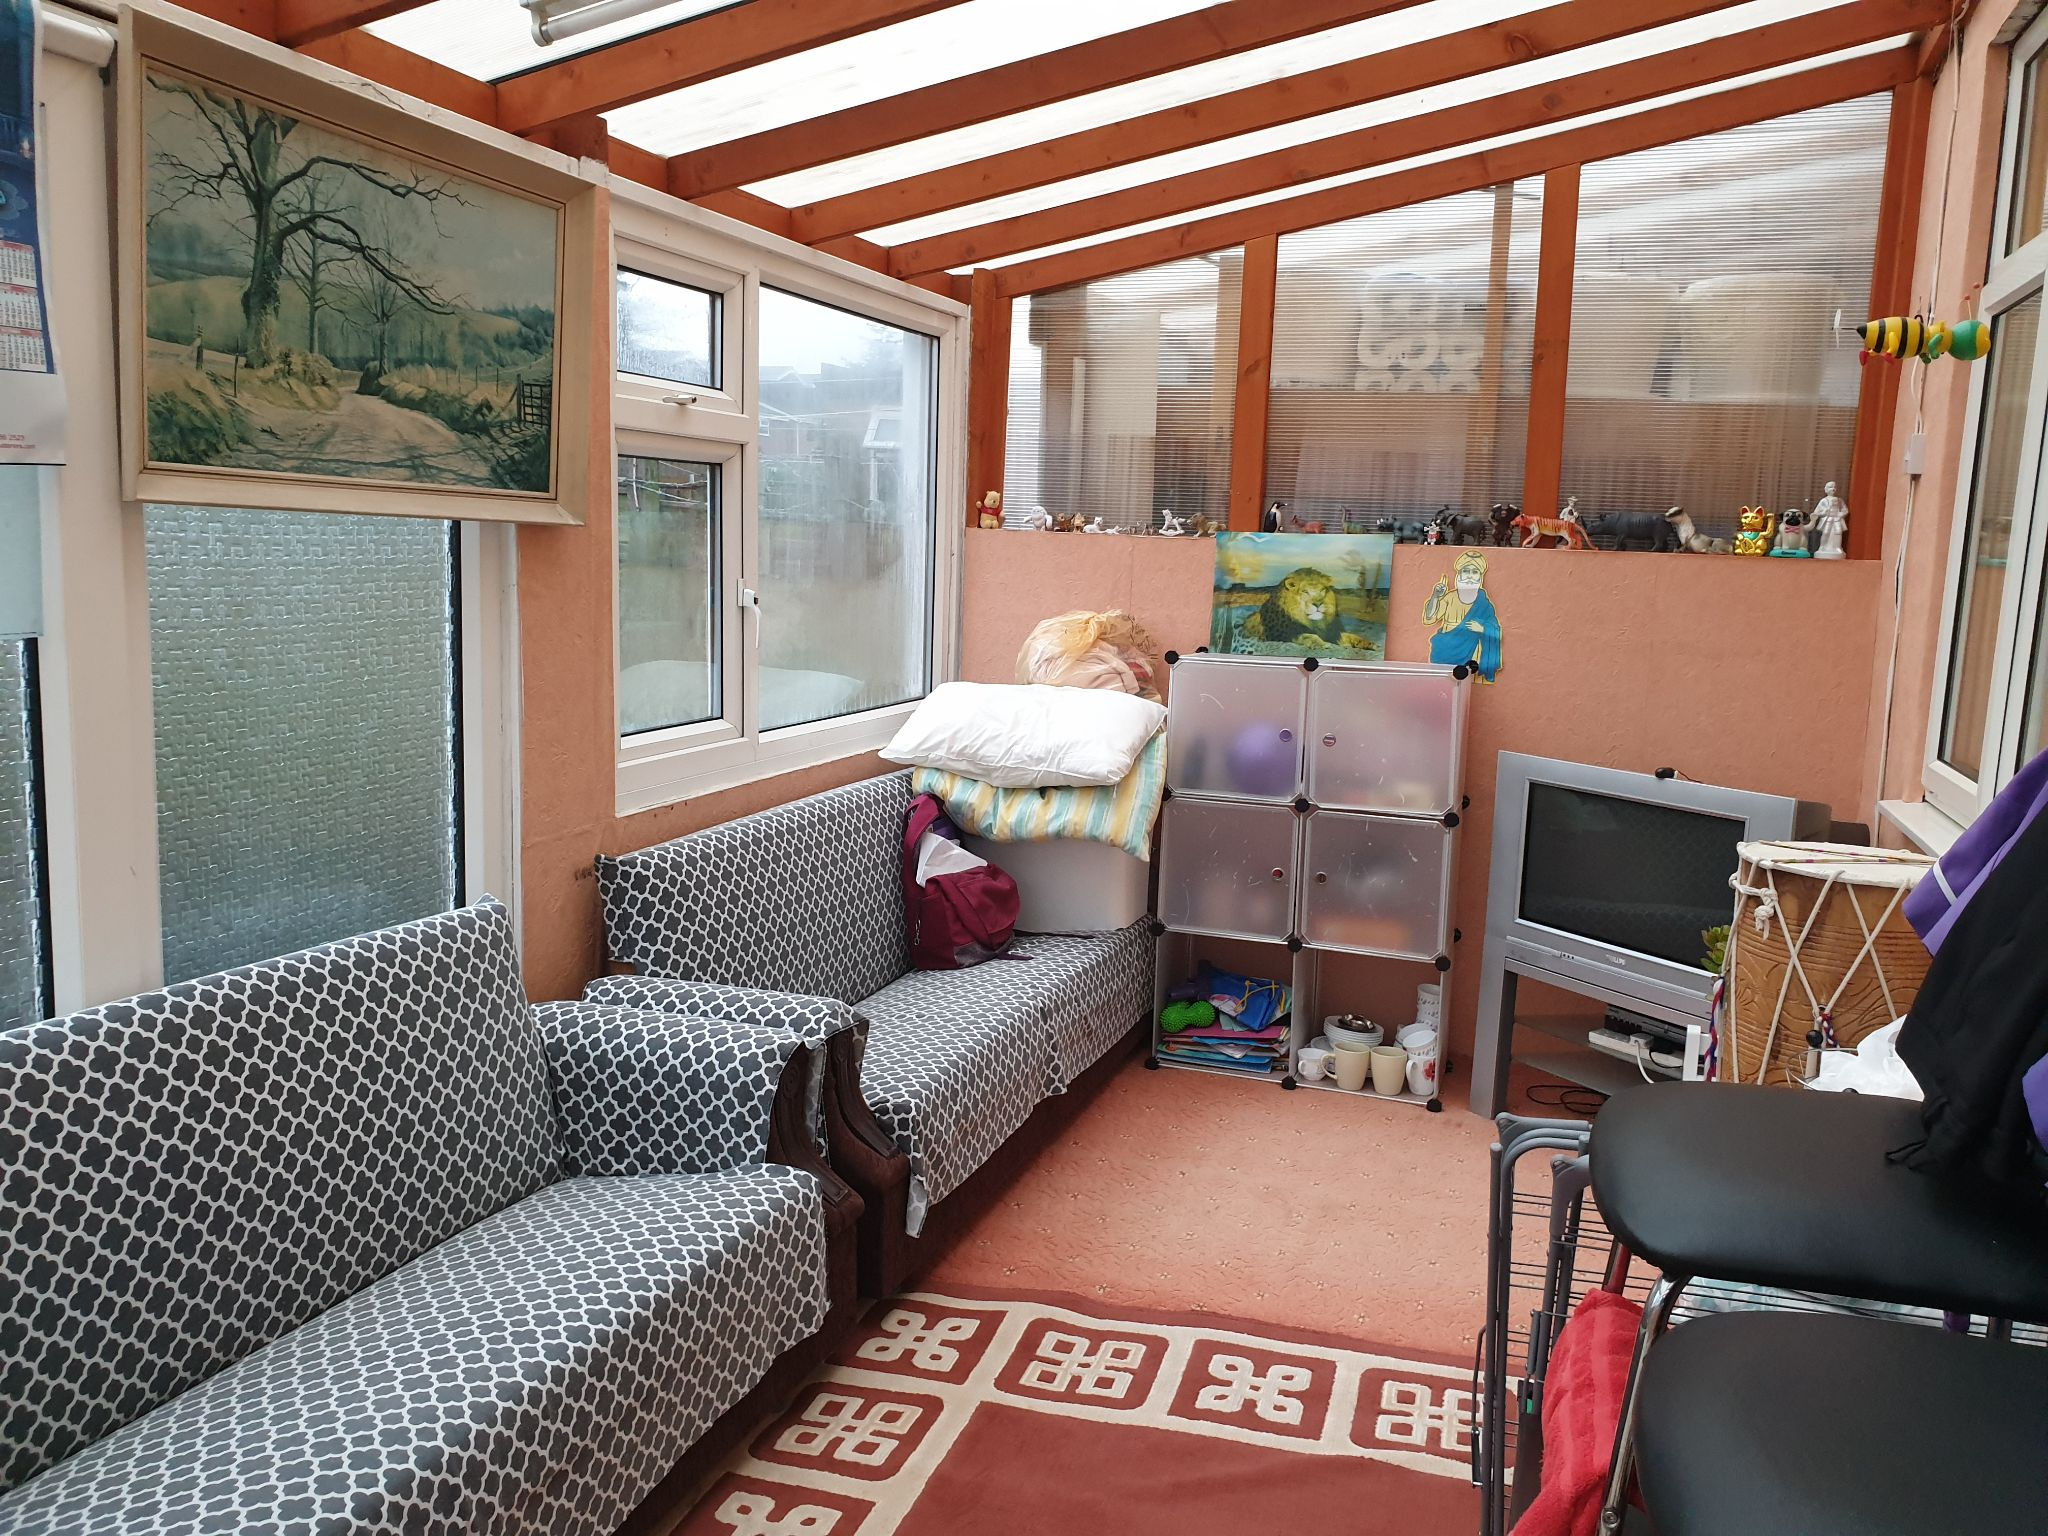 3 Bedroom Semi-detached House For Sale 35 Marston Road Image 6